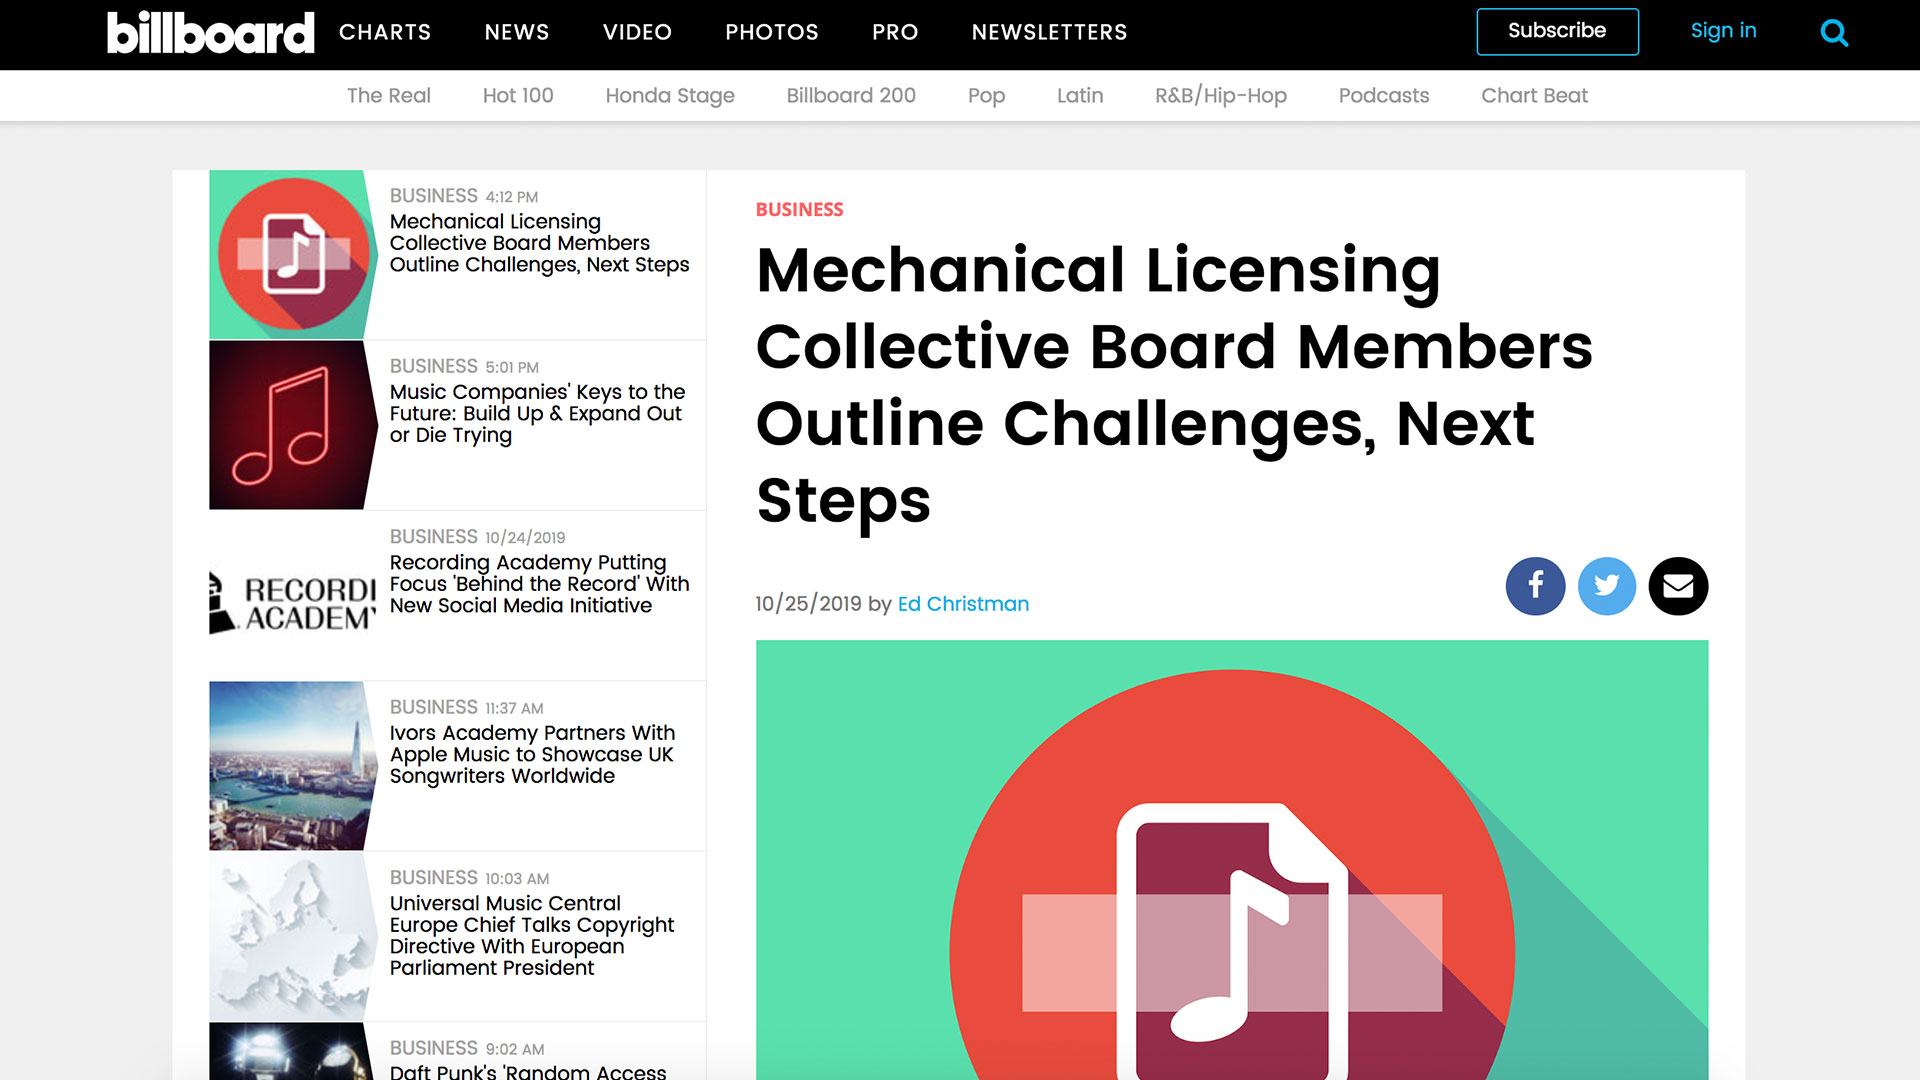 Fairness Rocks News Mechanical Licensing Collective Board Members Outline Challenges, Next Steps